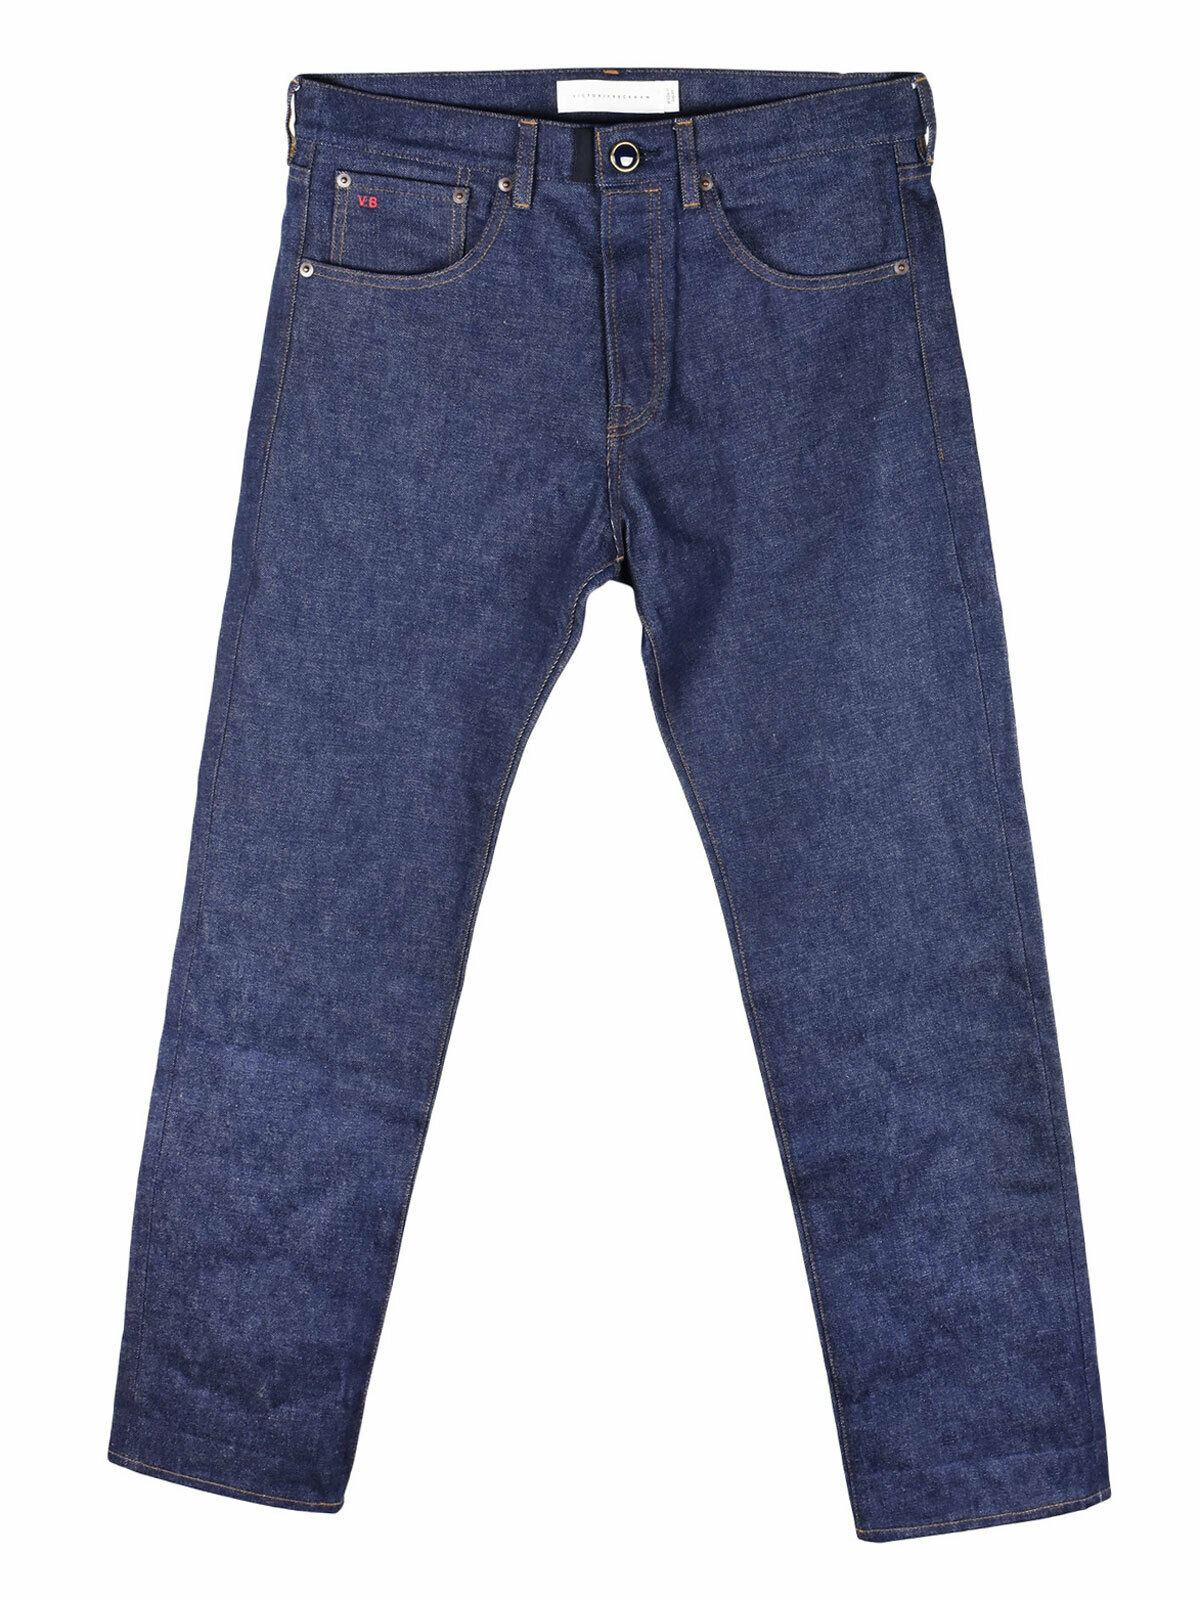 Victoria Beckham loose fit straight high rise jeans